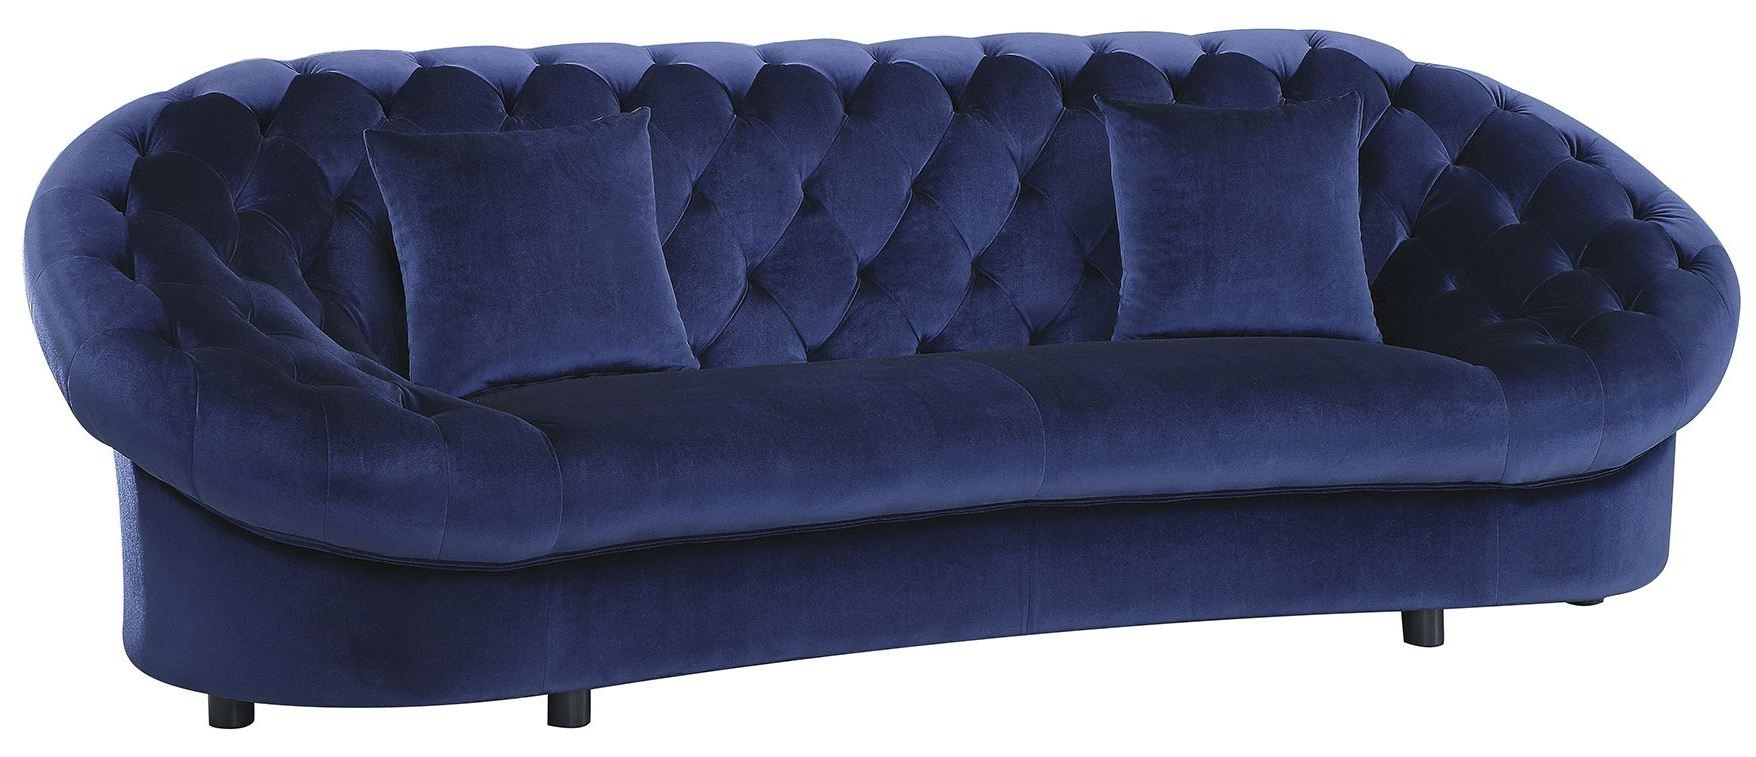 Romanus Royal Blue Velvet Sofa From Coaster Coleman